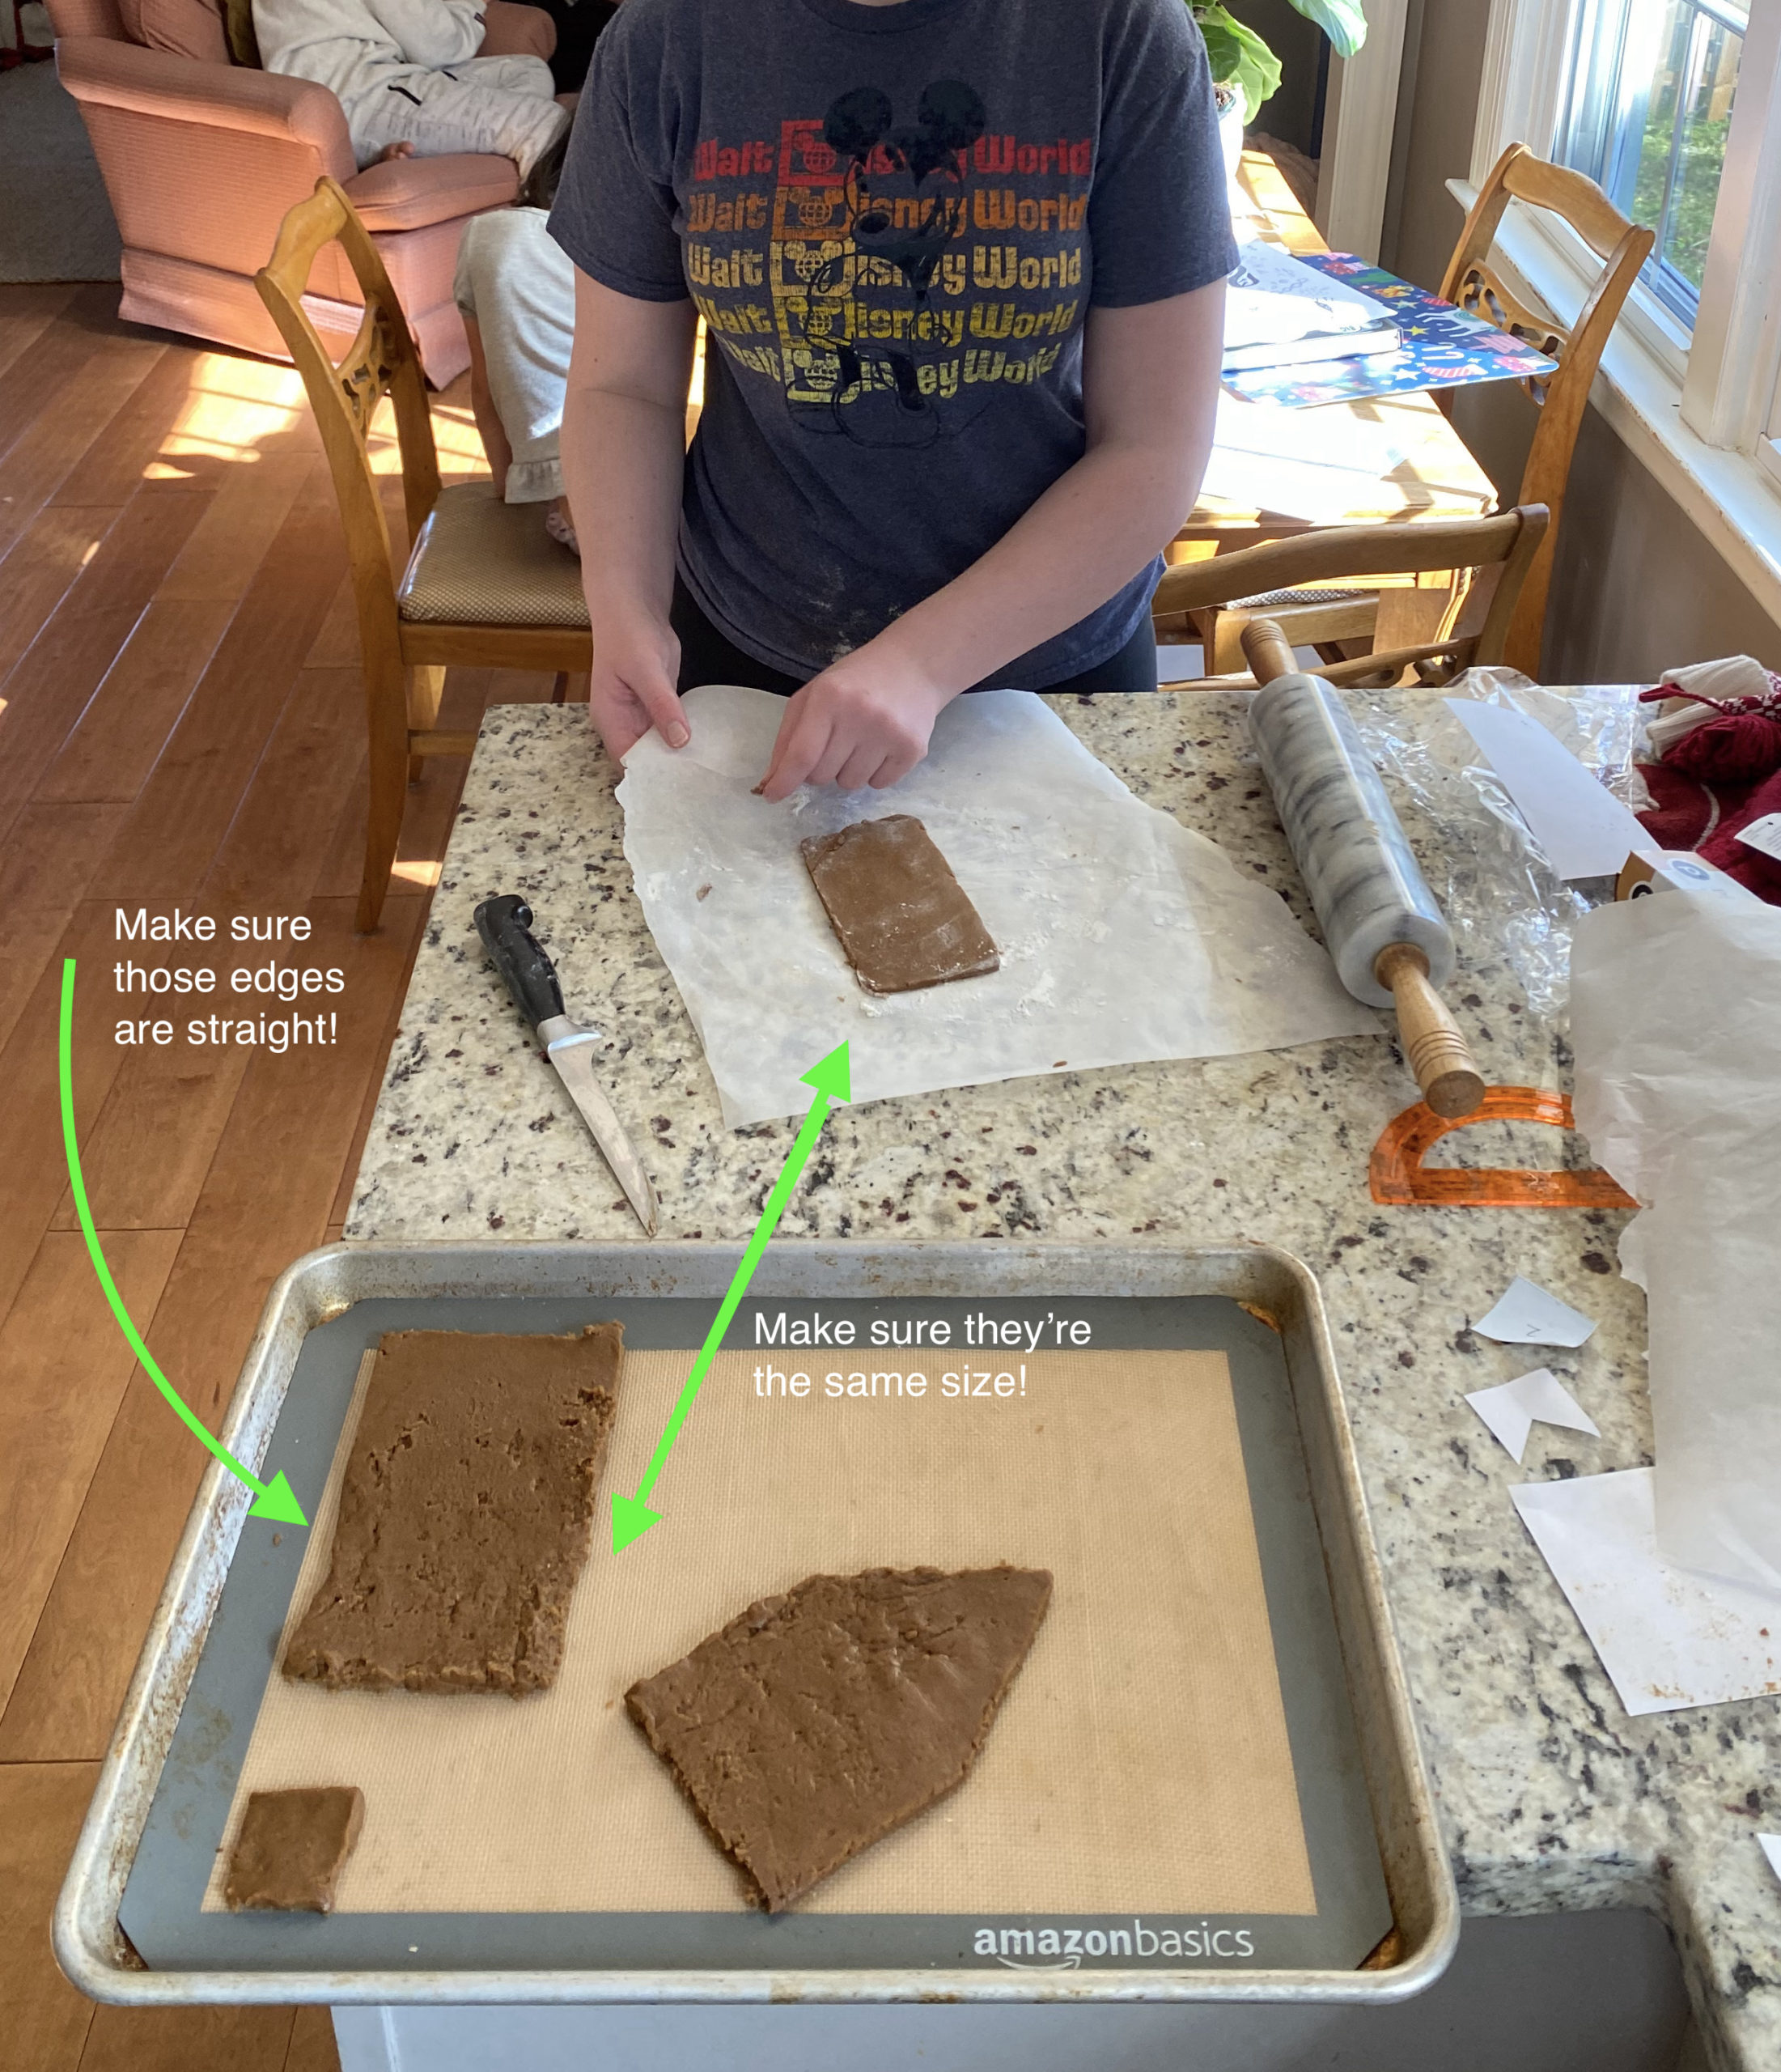 Tips for making a homemade gingerbread house from scratch: Measure twice, cut once! More tips: CoolMomEats.com | Photo © Kate Etue for Cool Mom Eats